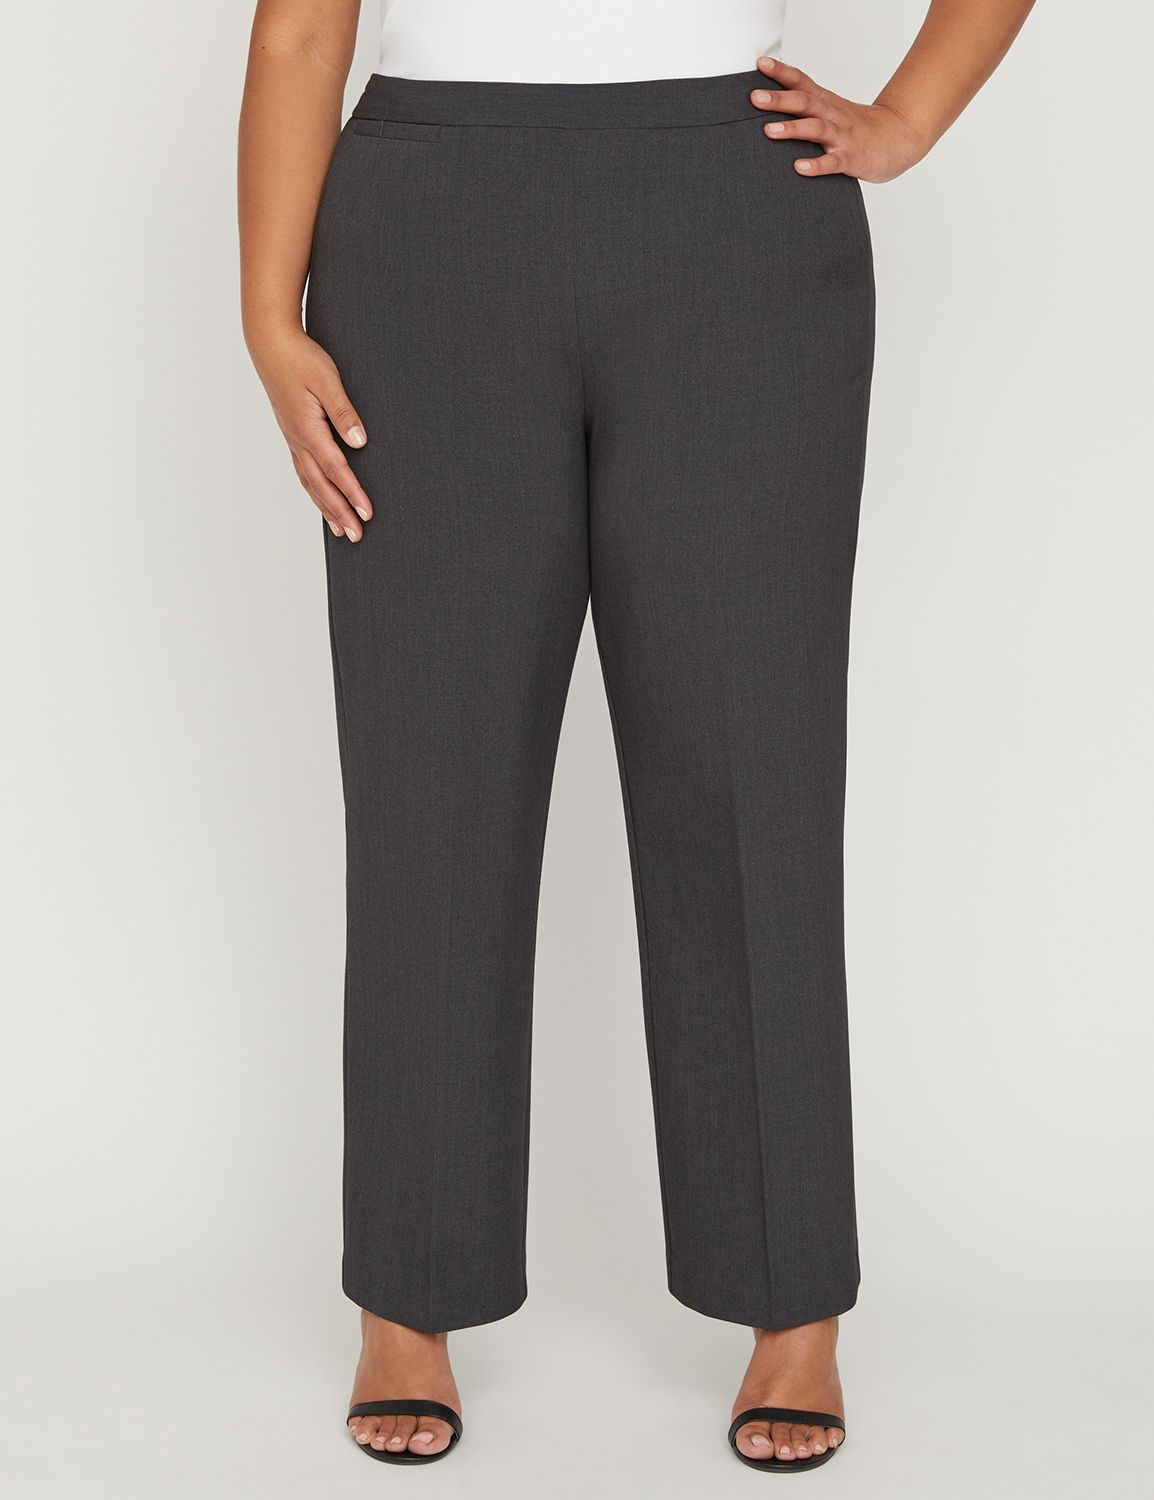 Heathered Refined Pant Heathered Refined Fit Pant MP-300044125